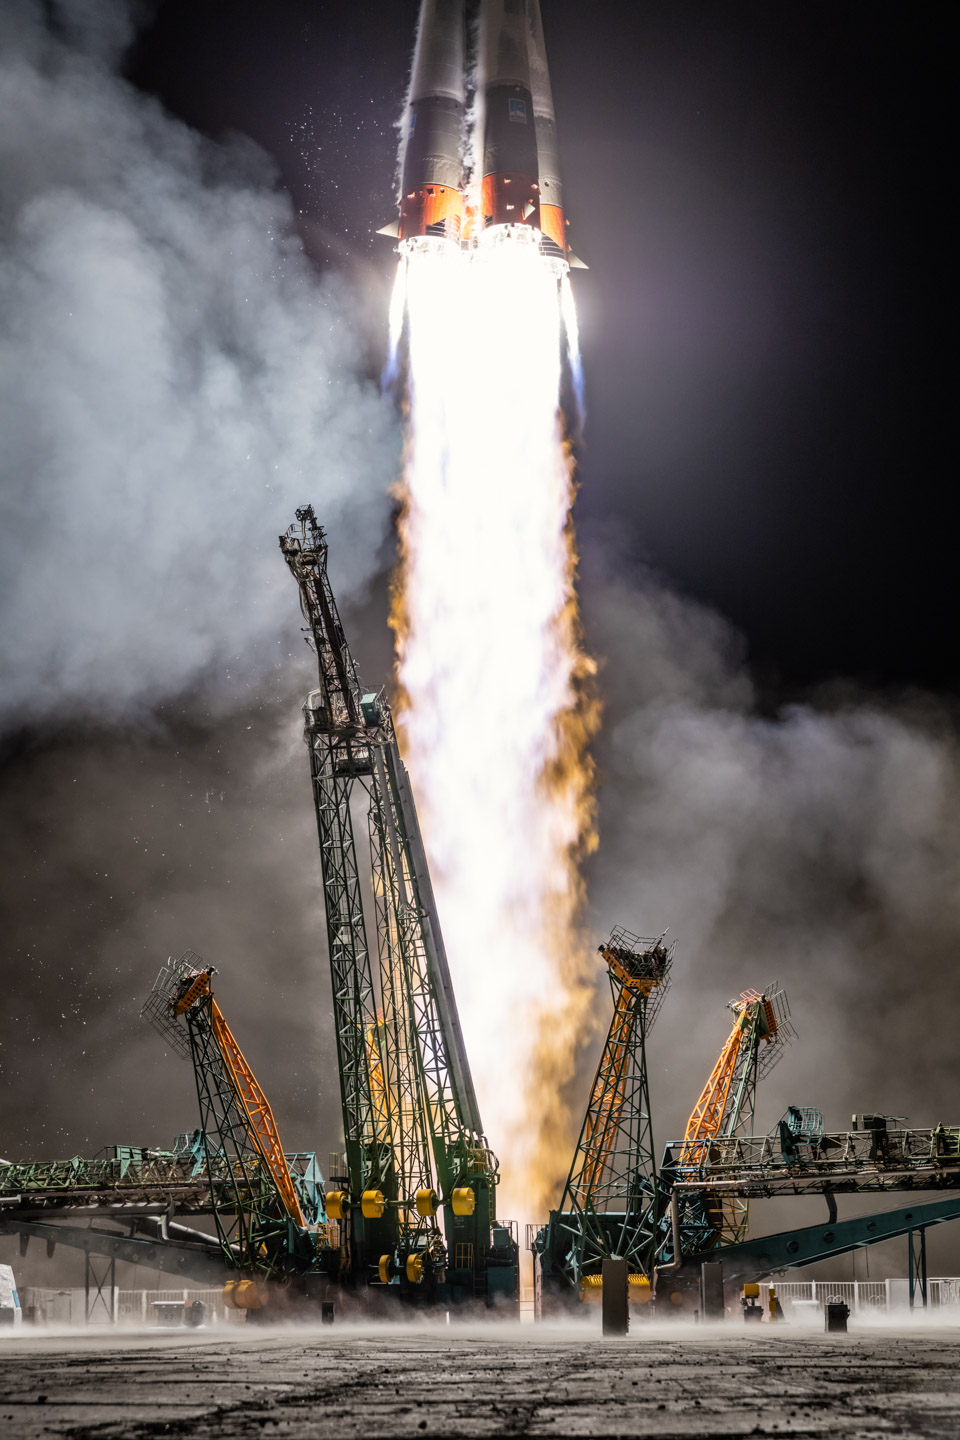 Winters_Nat_Geo_Soyuz_Launch_7450